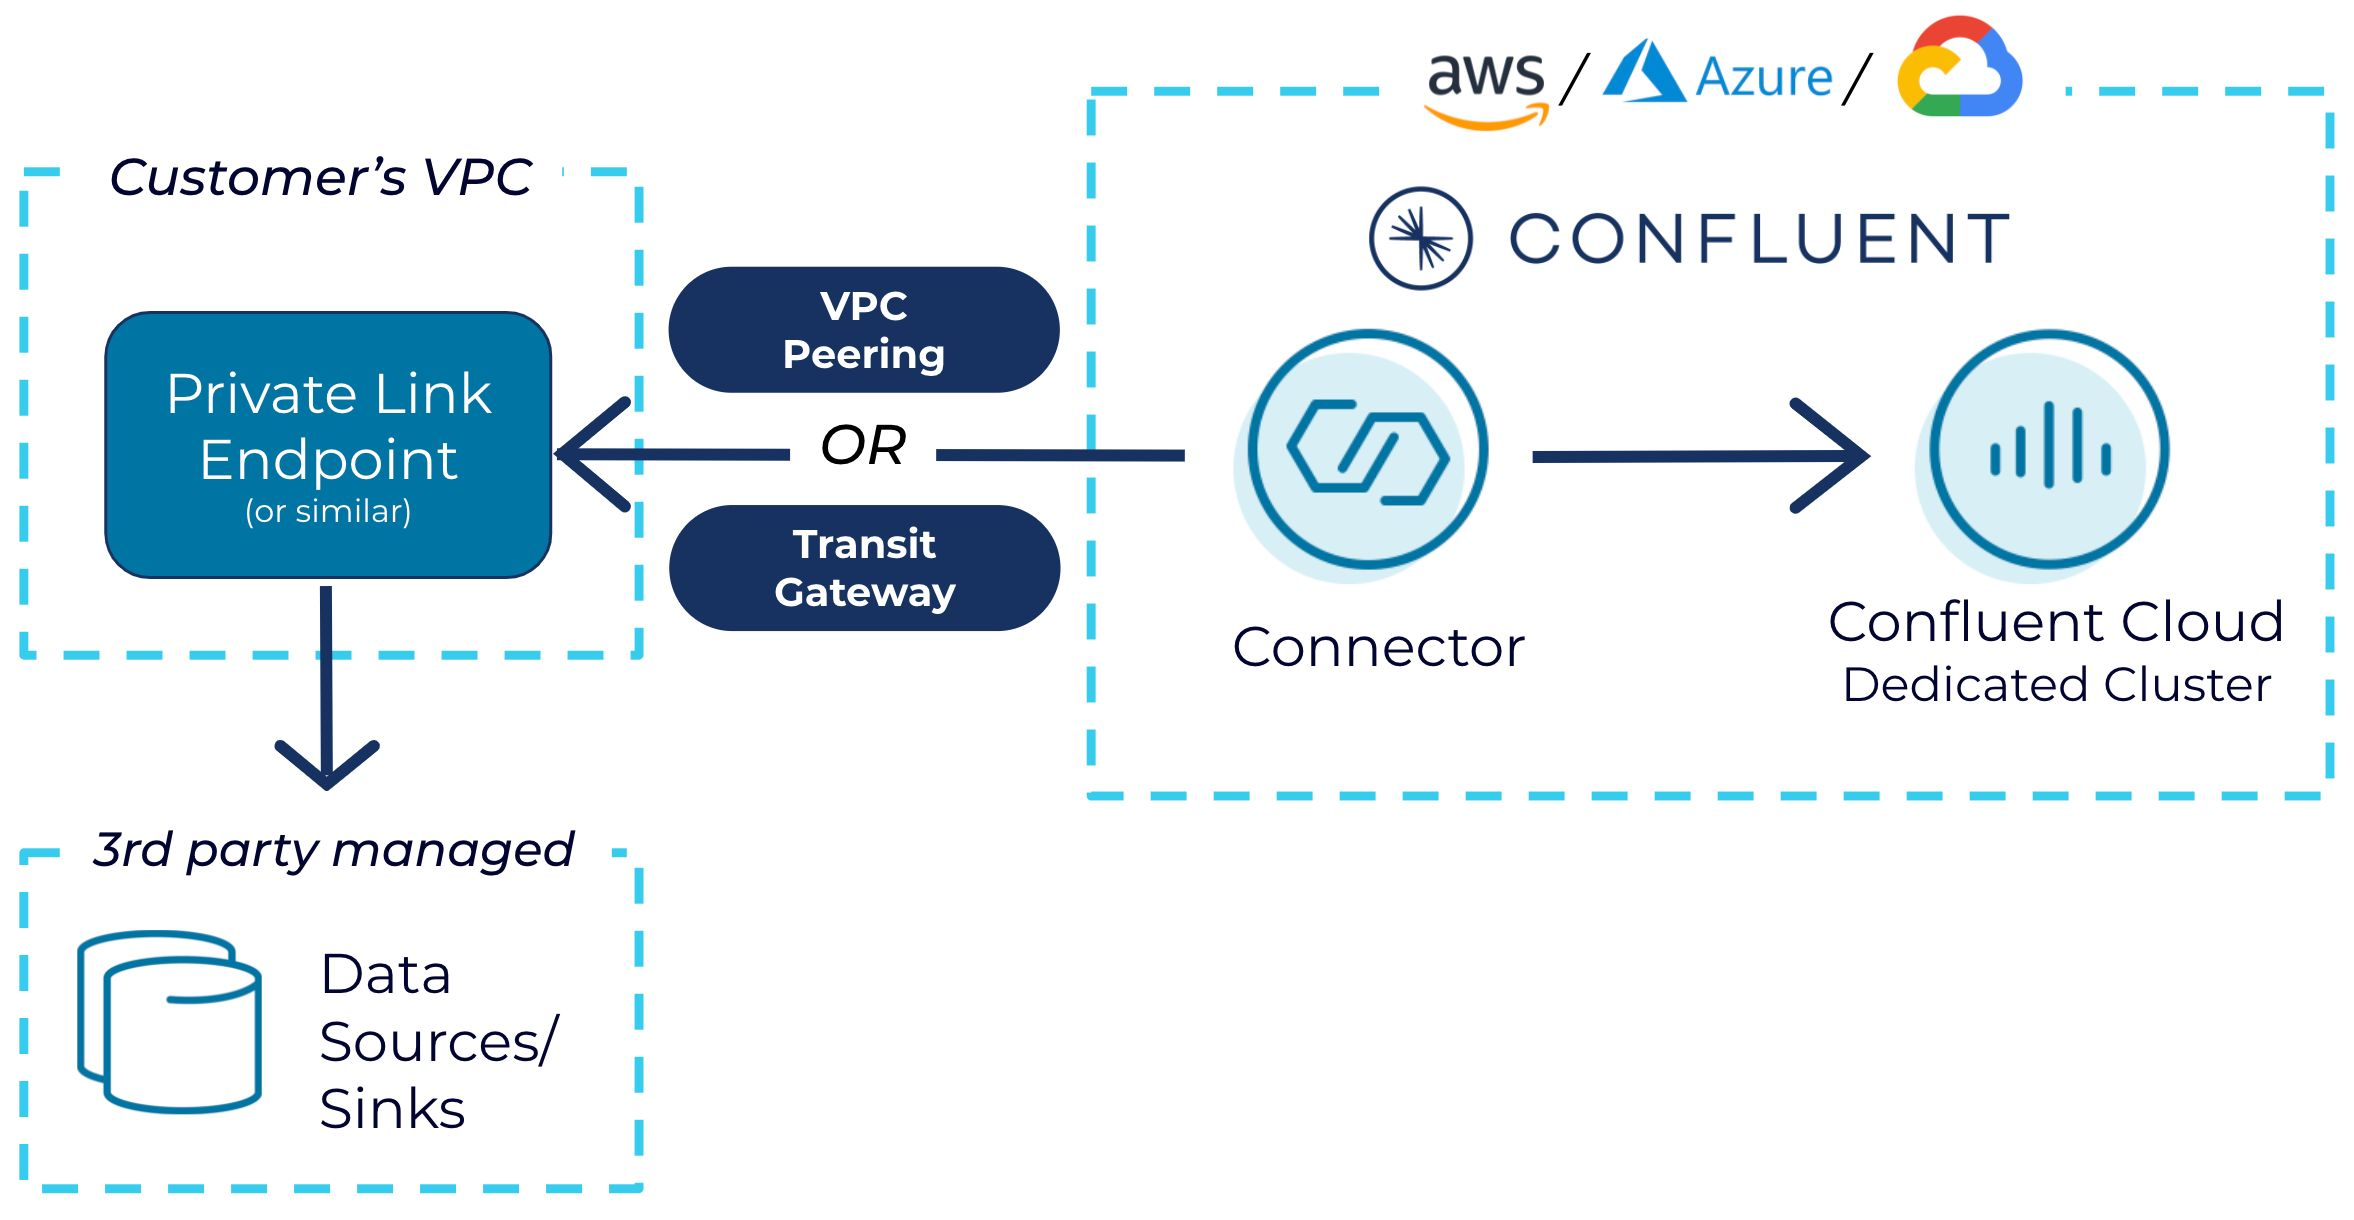 Private link endpoint to the data source/sink in the VPC